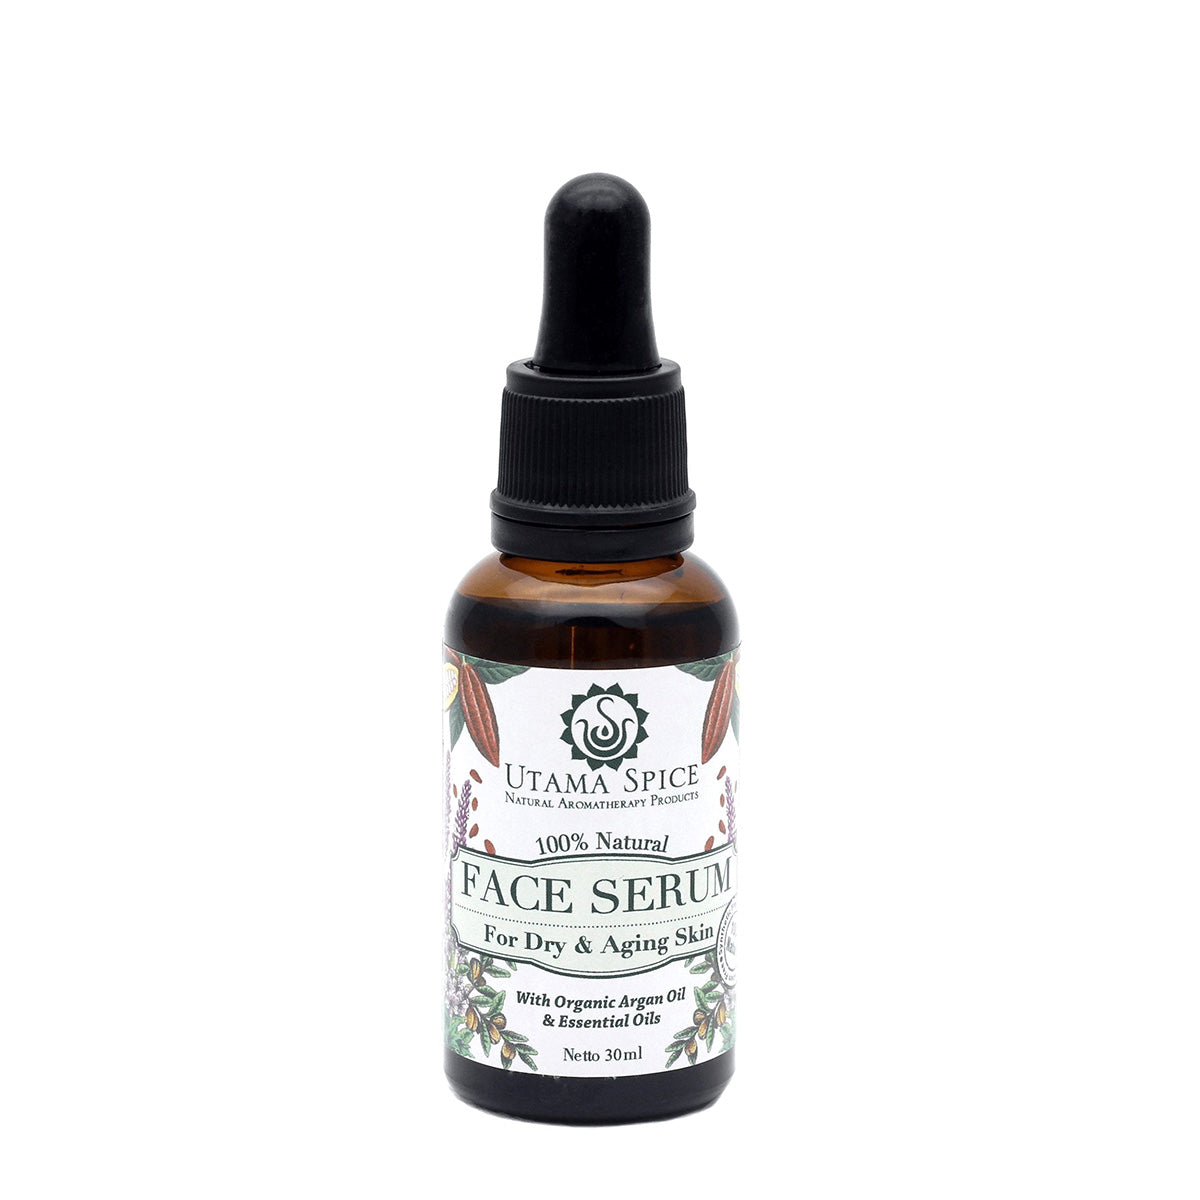 Utama Spice 100% Natural Face Serum 30ml / Each - Zero Waste Bali